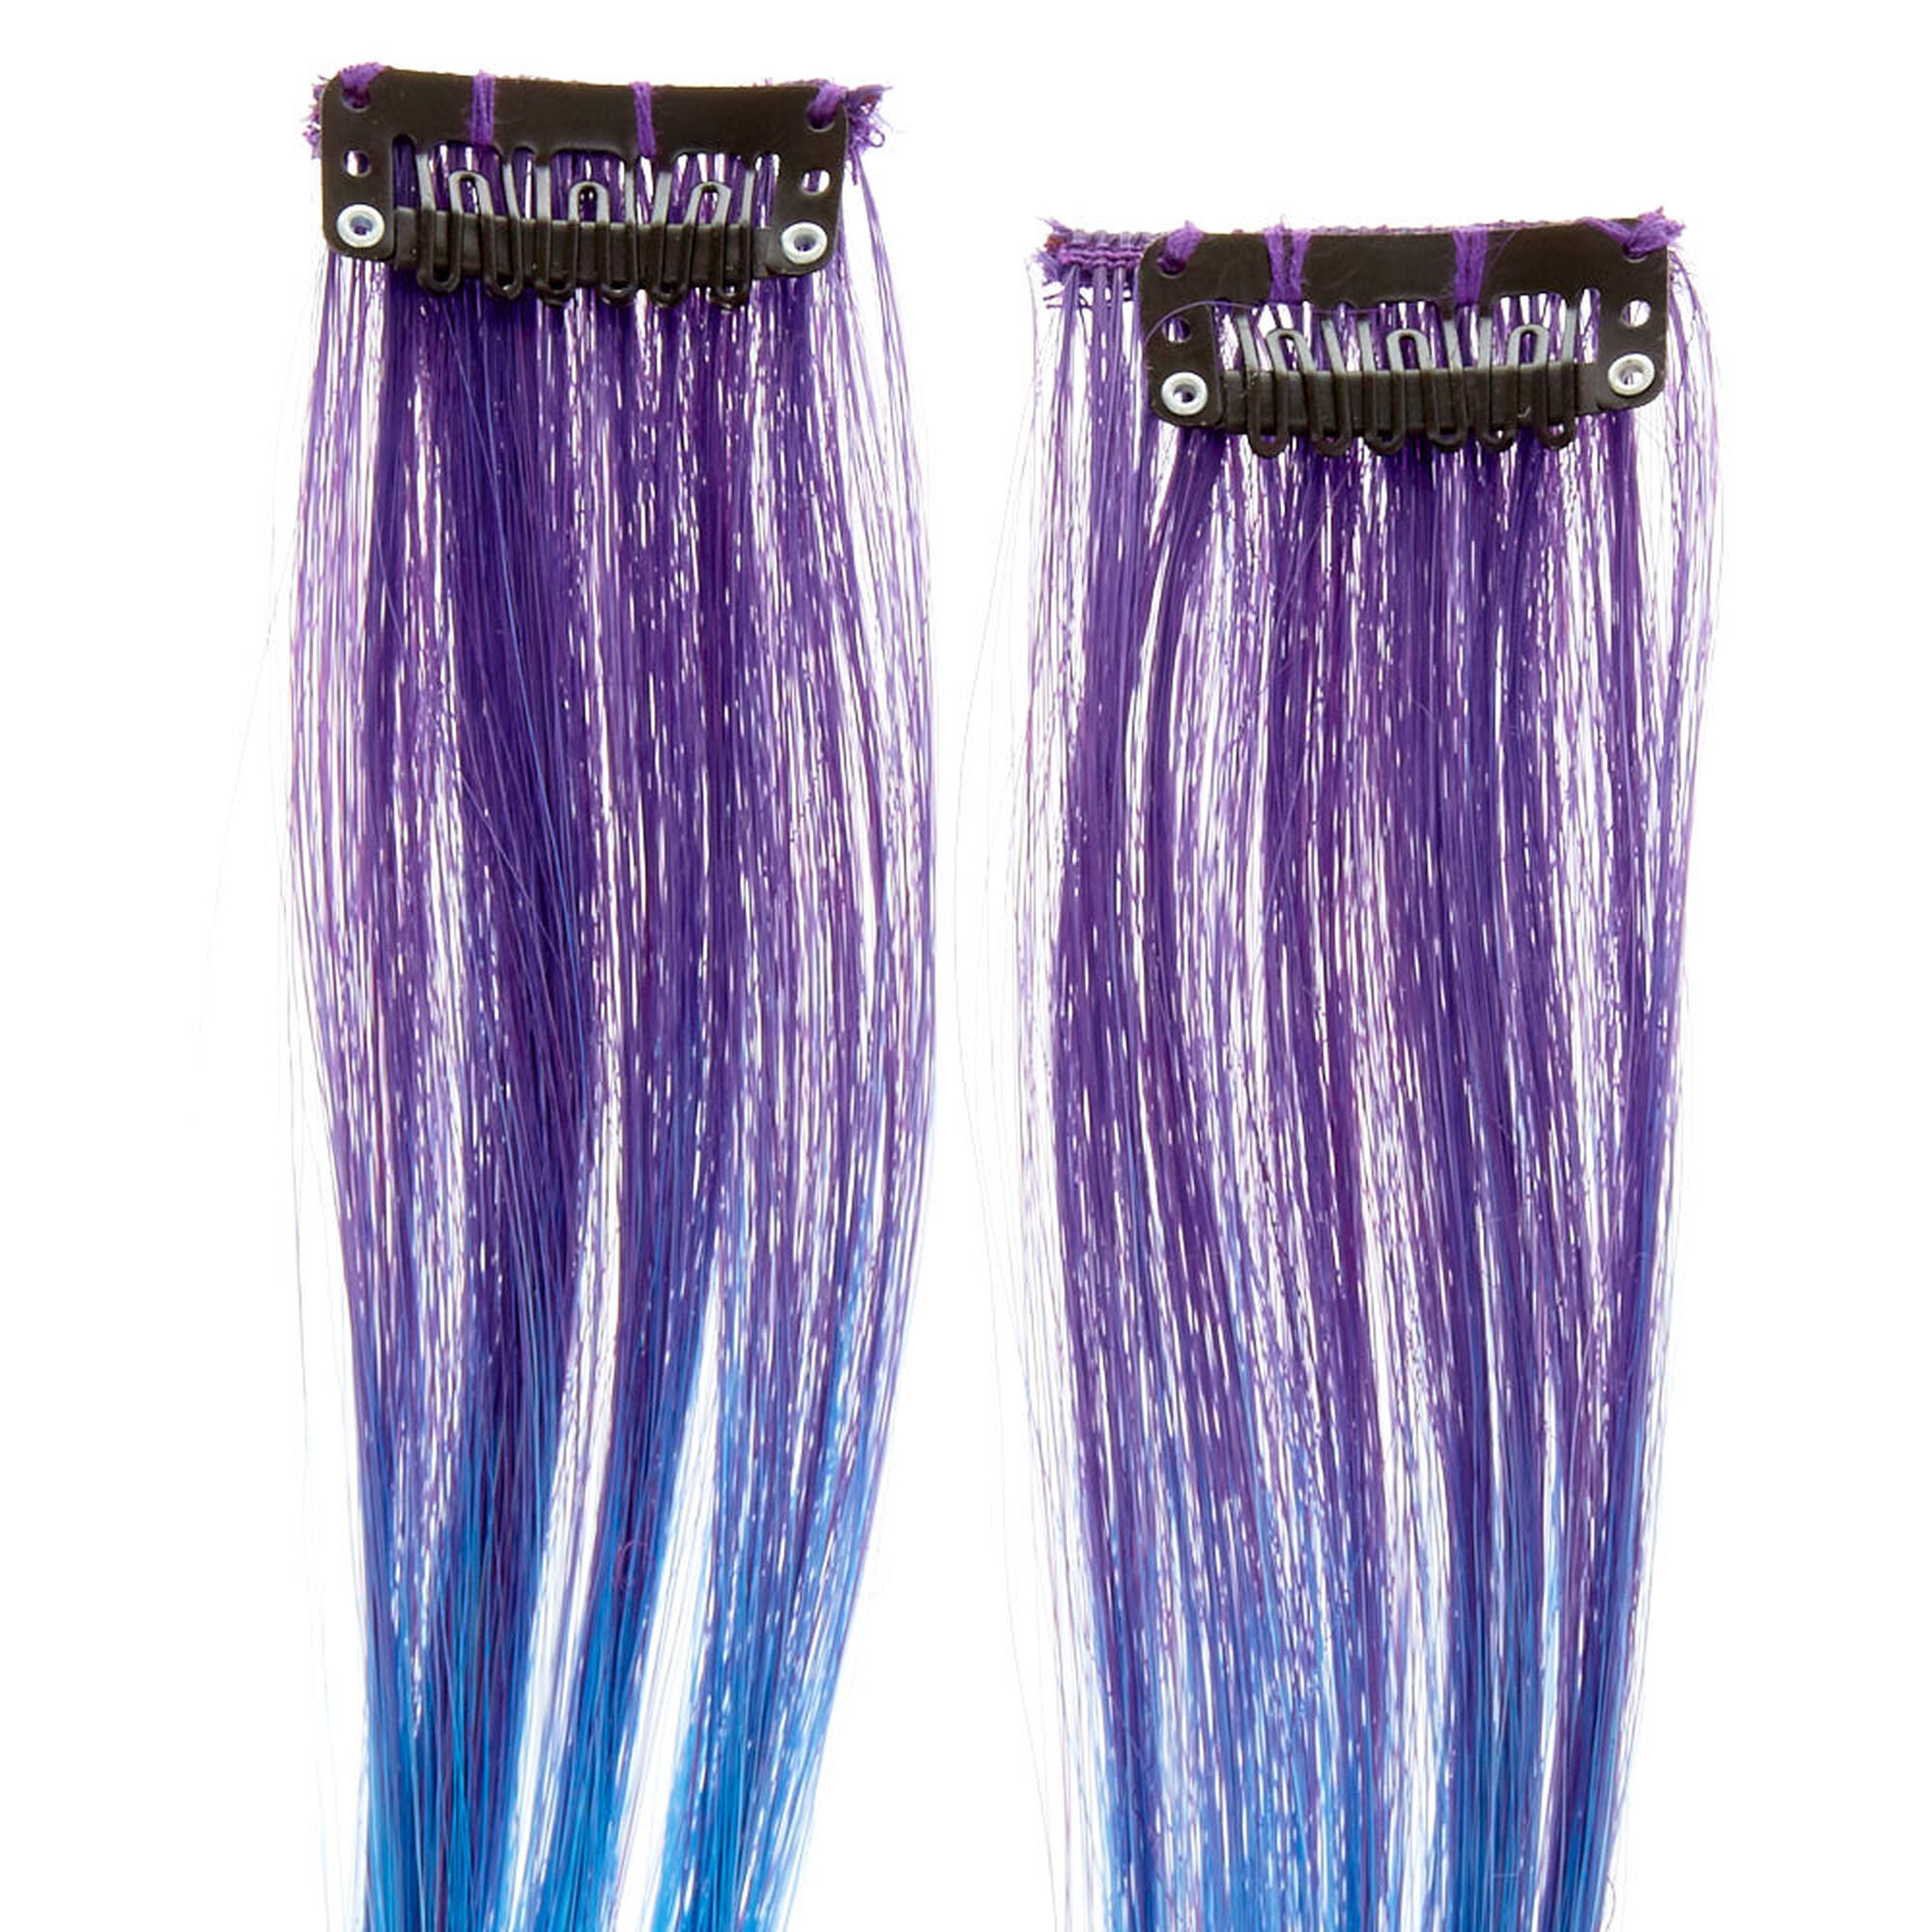 Mermaid Ombre Dash Faux Hair Extensions Claires Us